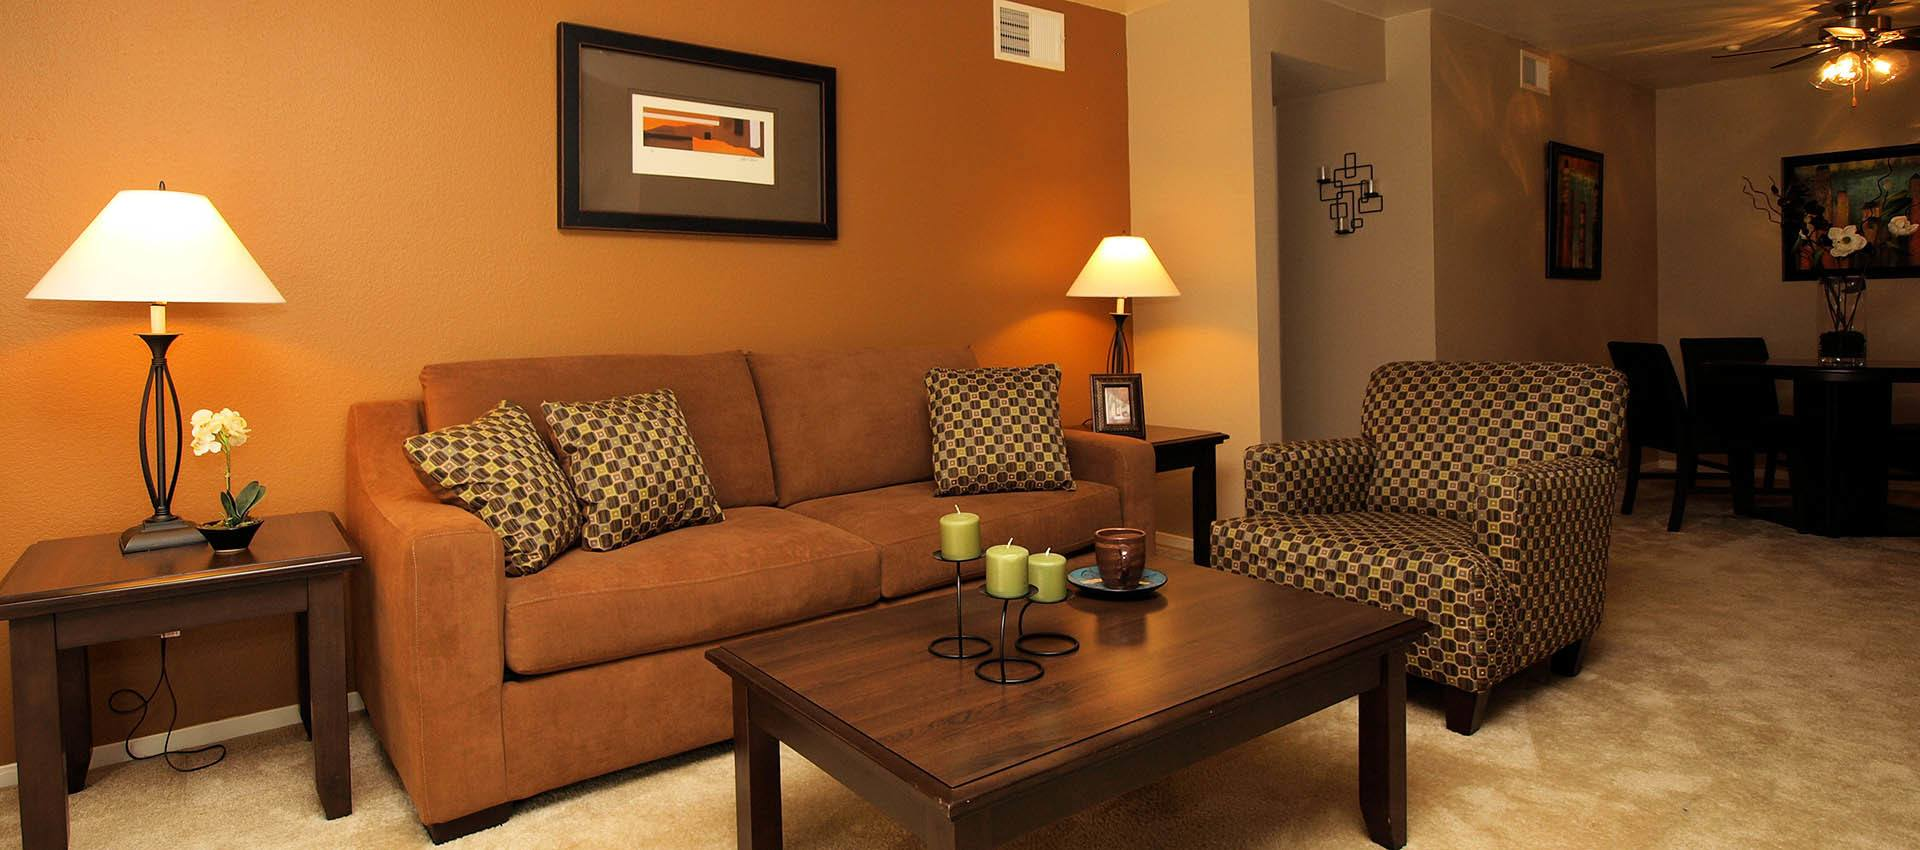 Standard Living Room at Hidden Lake Condominium Rentals in Sacramento, CA